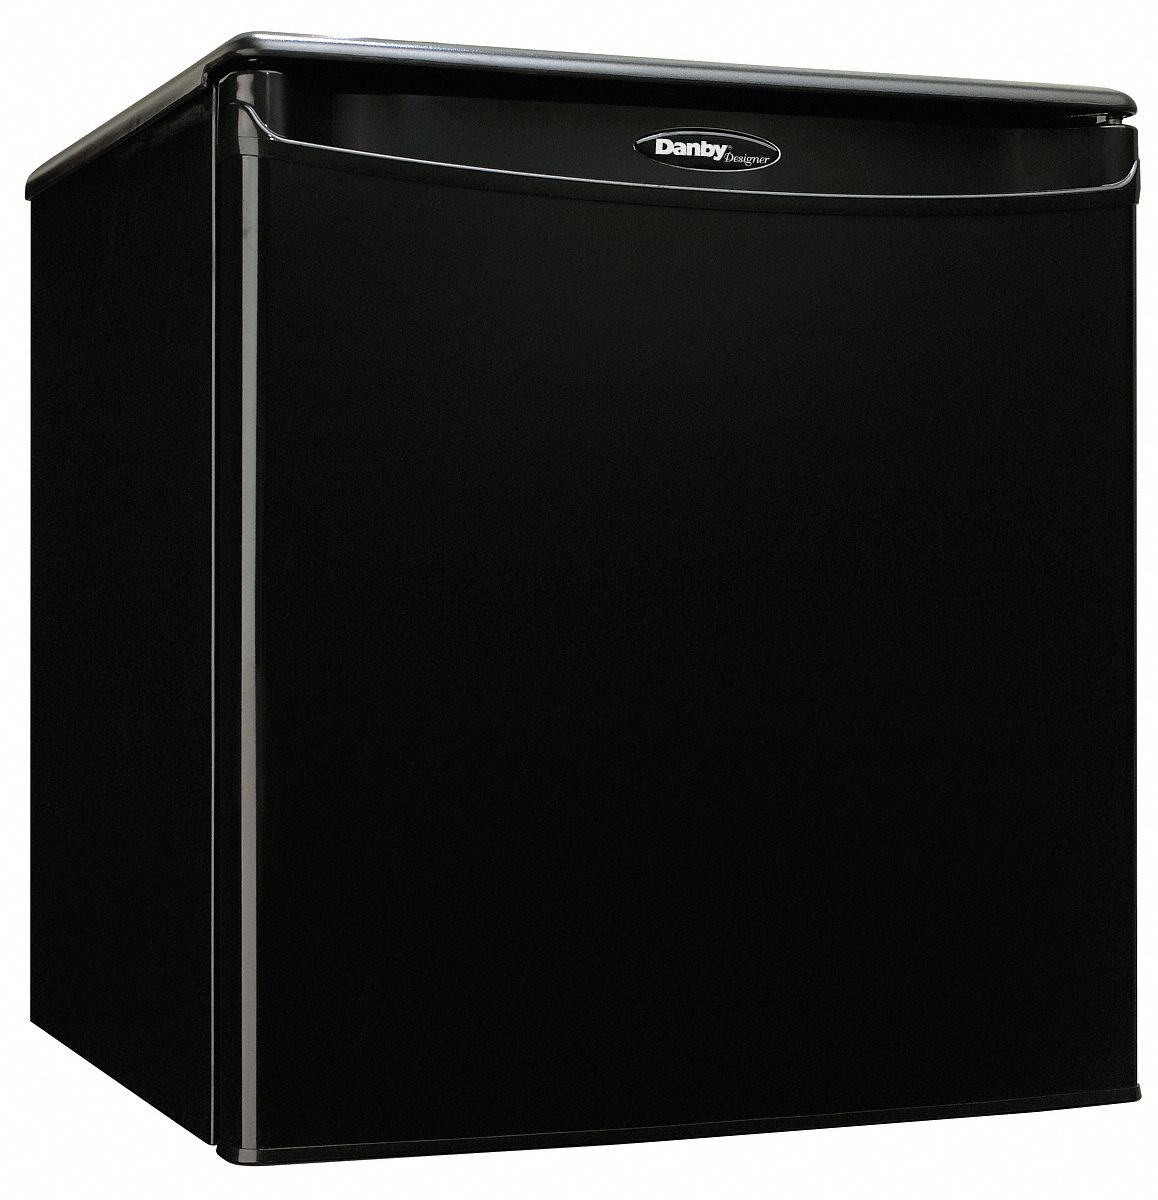 Refrigerator, Residential, Black, 17 5/8 in Overall Width, 1.7 cu ft Refrigerator Capacity